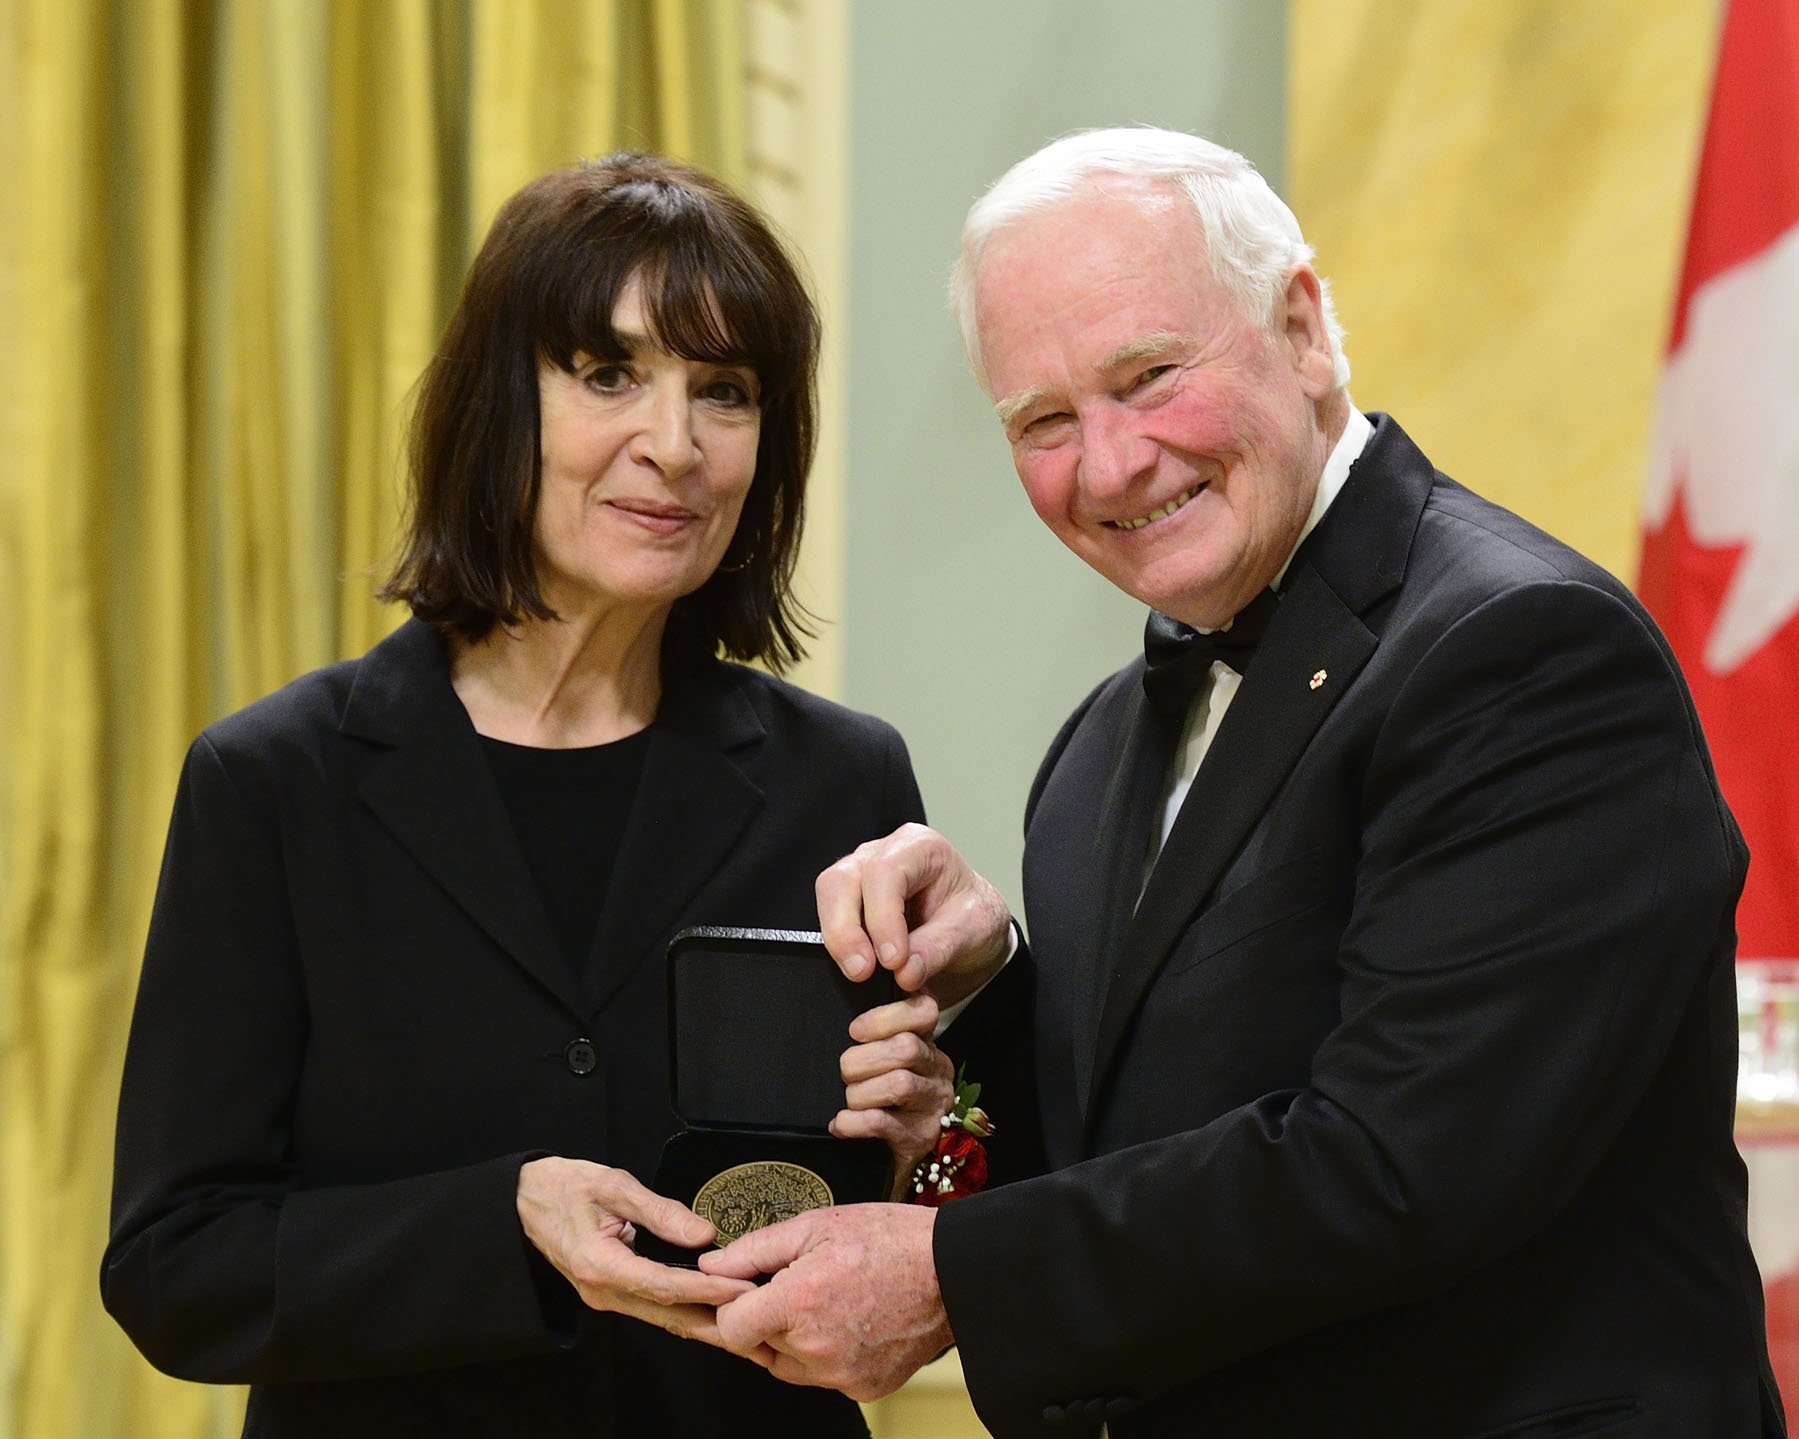 His Excellency presented the first award to Michèle Cournoyer for her provocative yet humorous films. She uses her black ink drawings to explore powerful themes of social and personal conflict with great sensitivity.